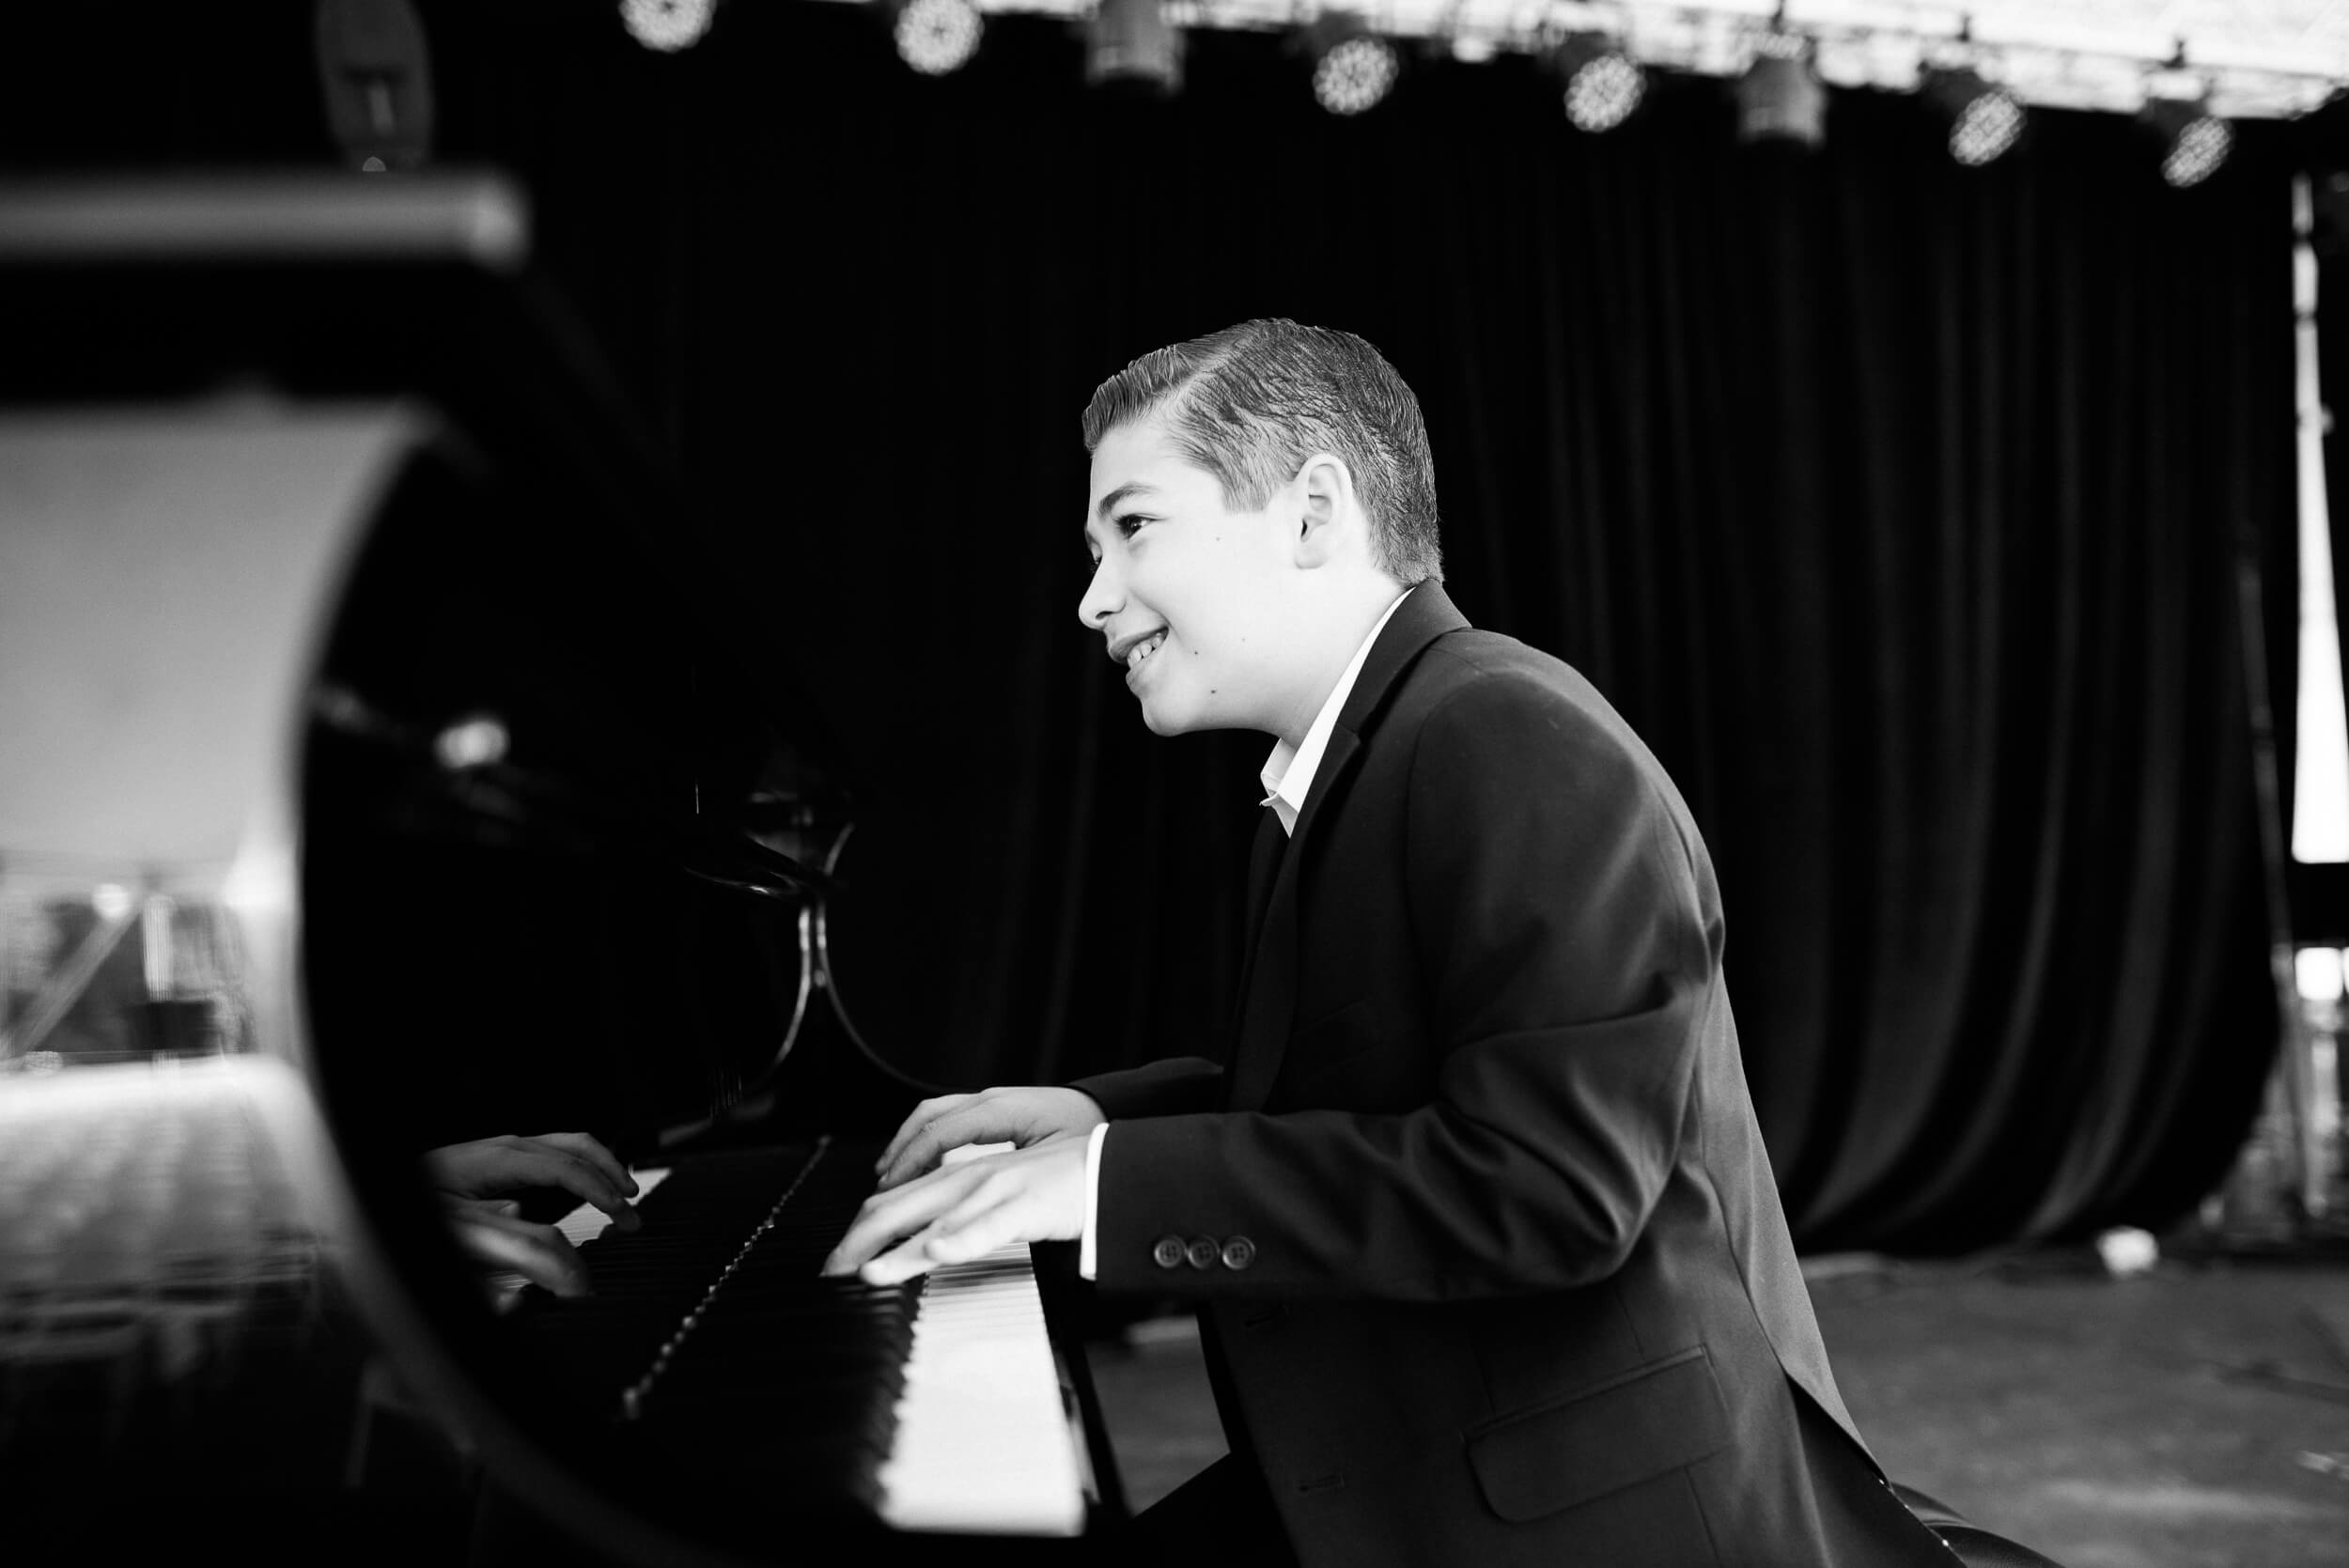 Young piano prodigy Brandon Goldberg from Florida, piano headshot at Litchfield Jazz Festival black and white by Lindsey Victoria Photography